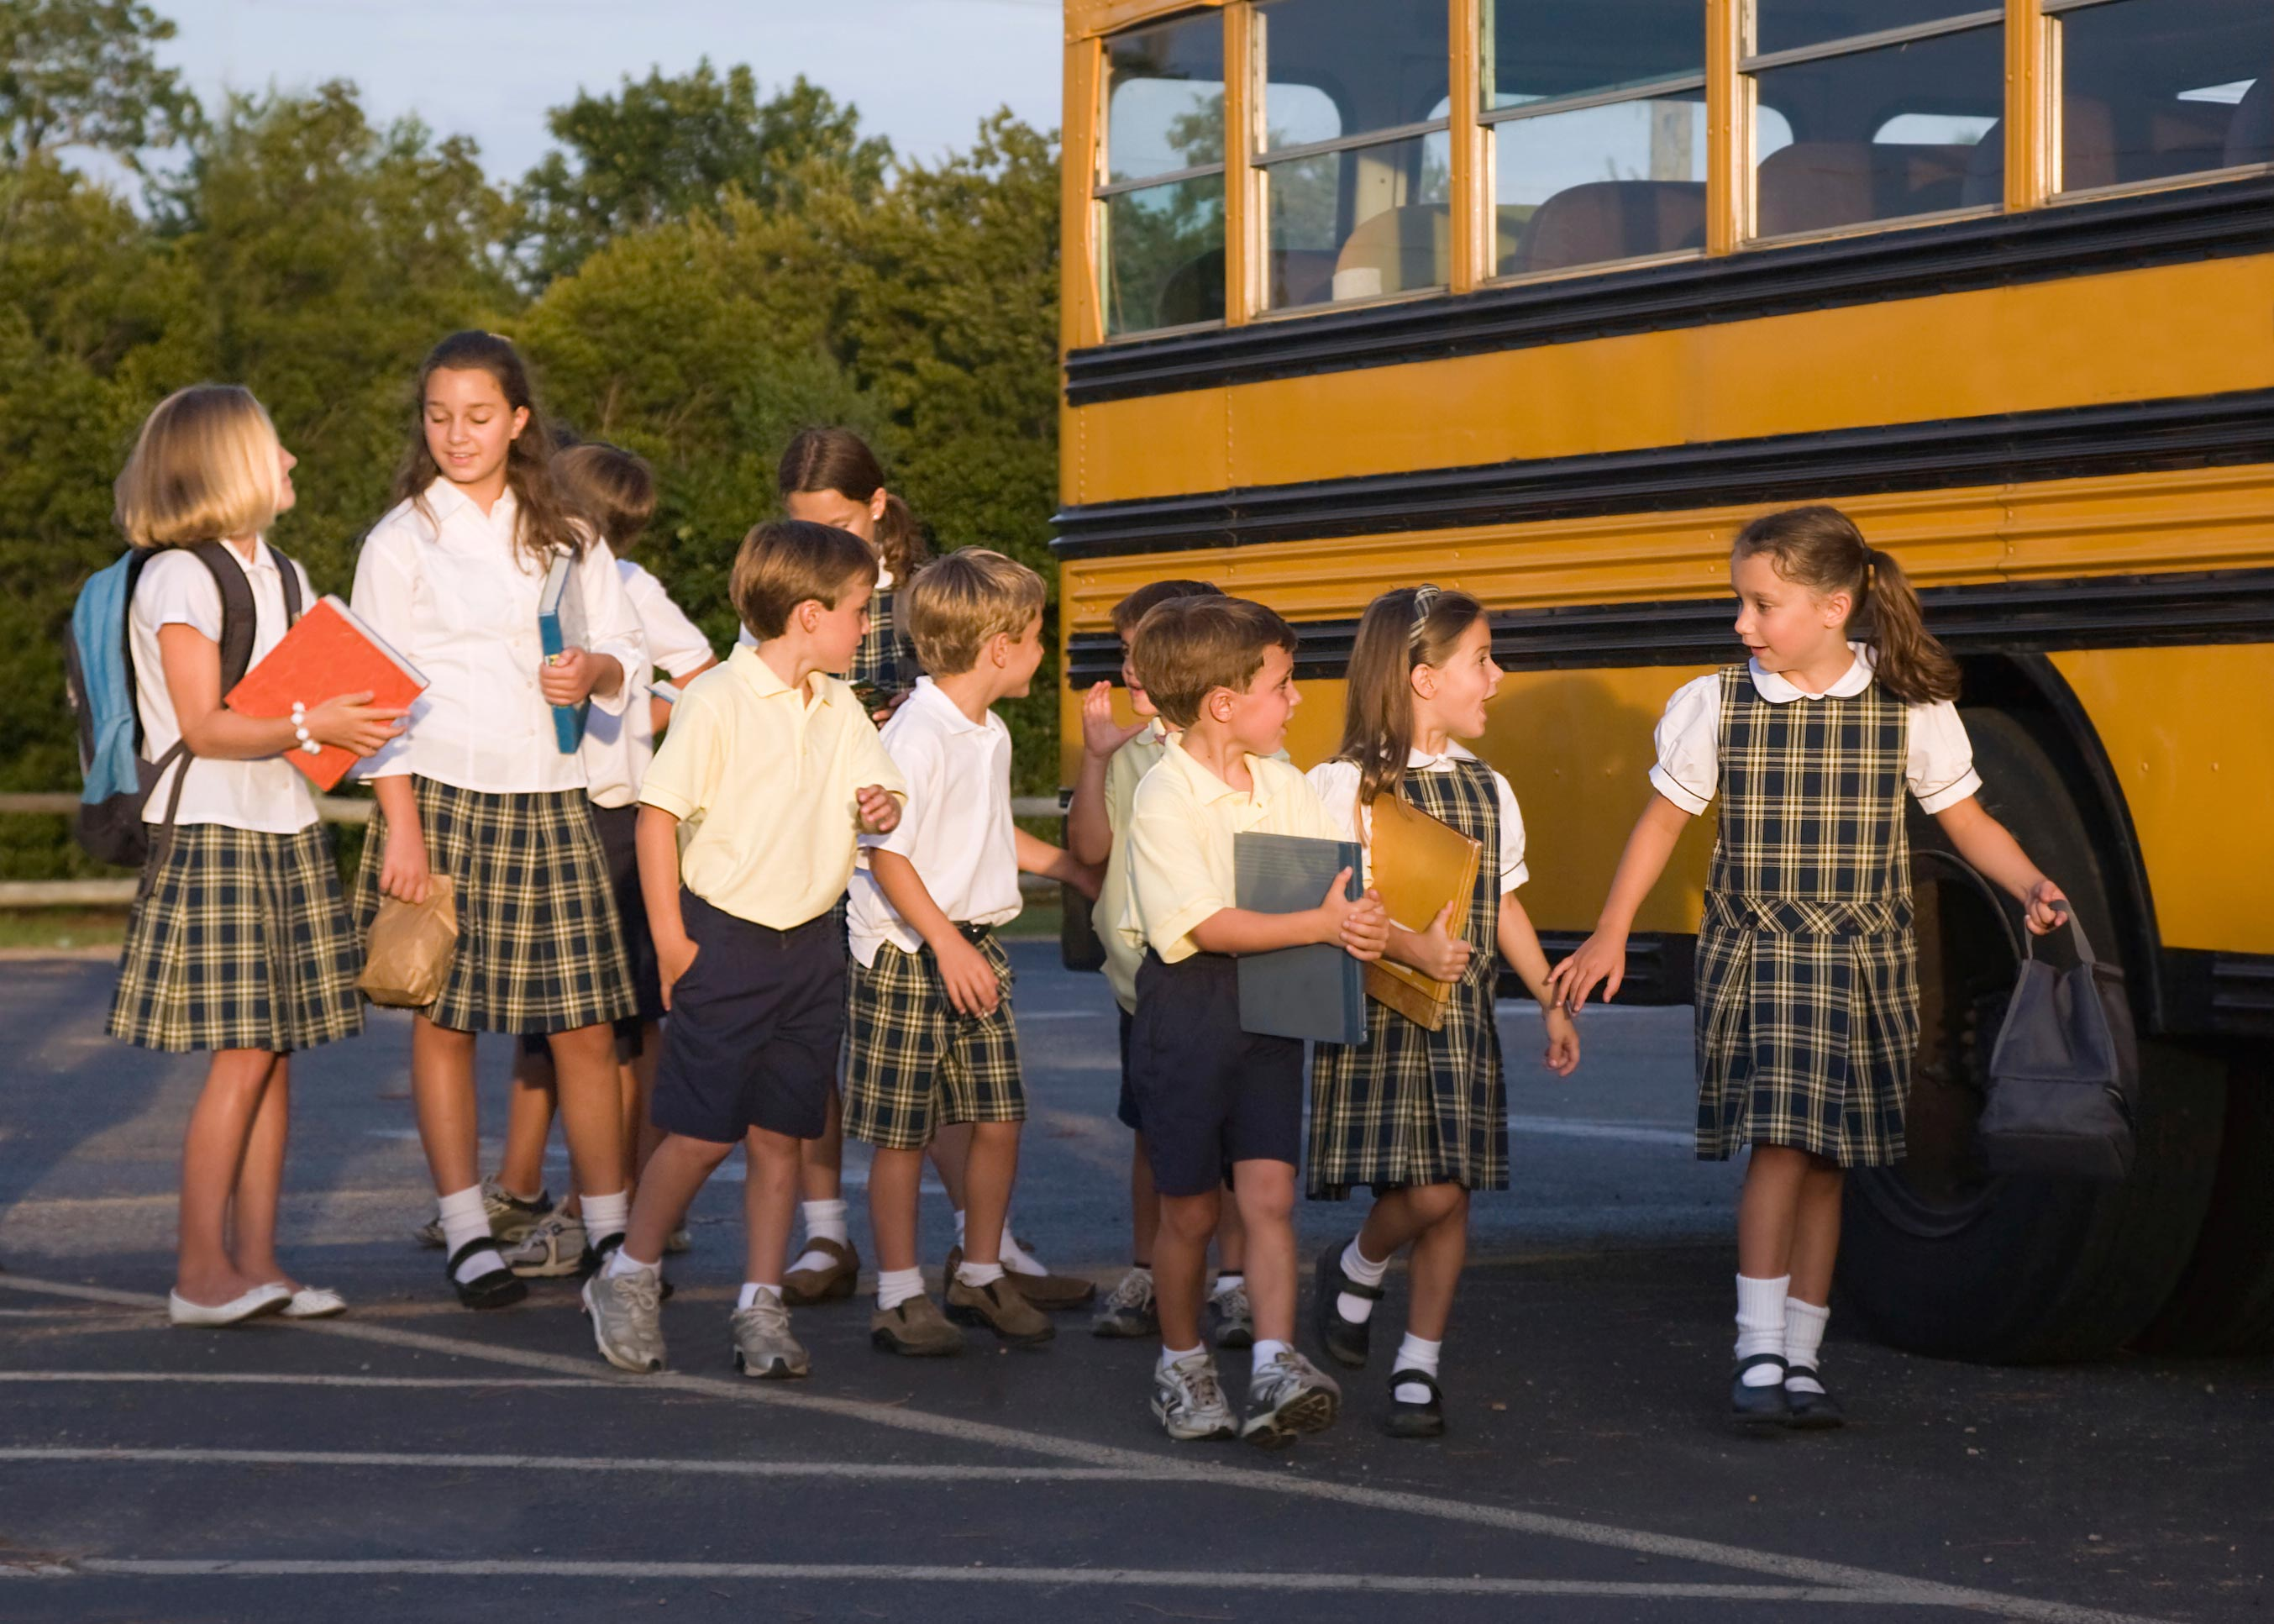 Unmatched Quality, Better School Uniforms - Jonathan Reed School Uniforms